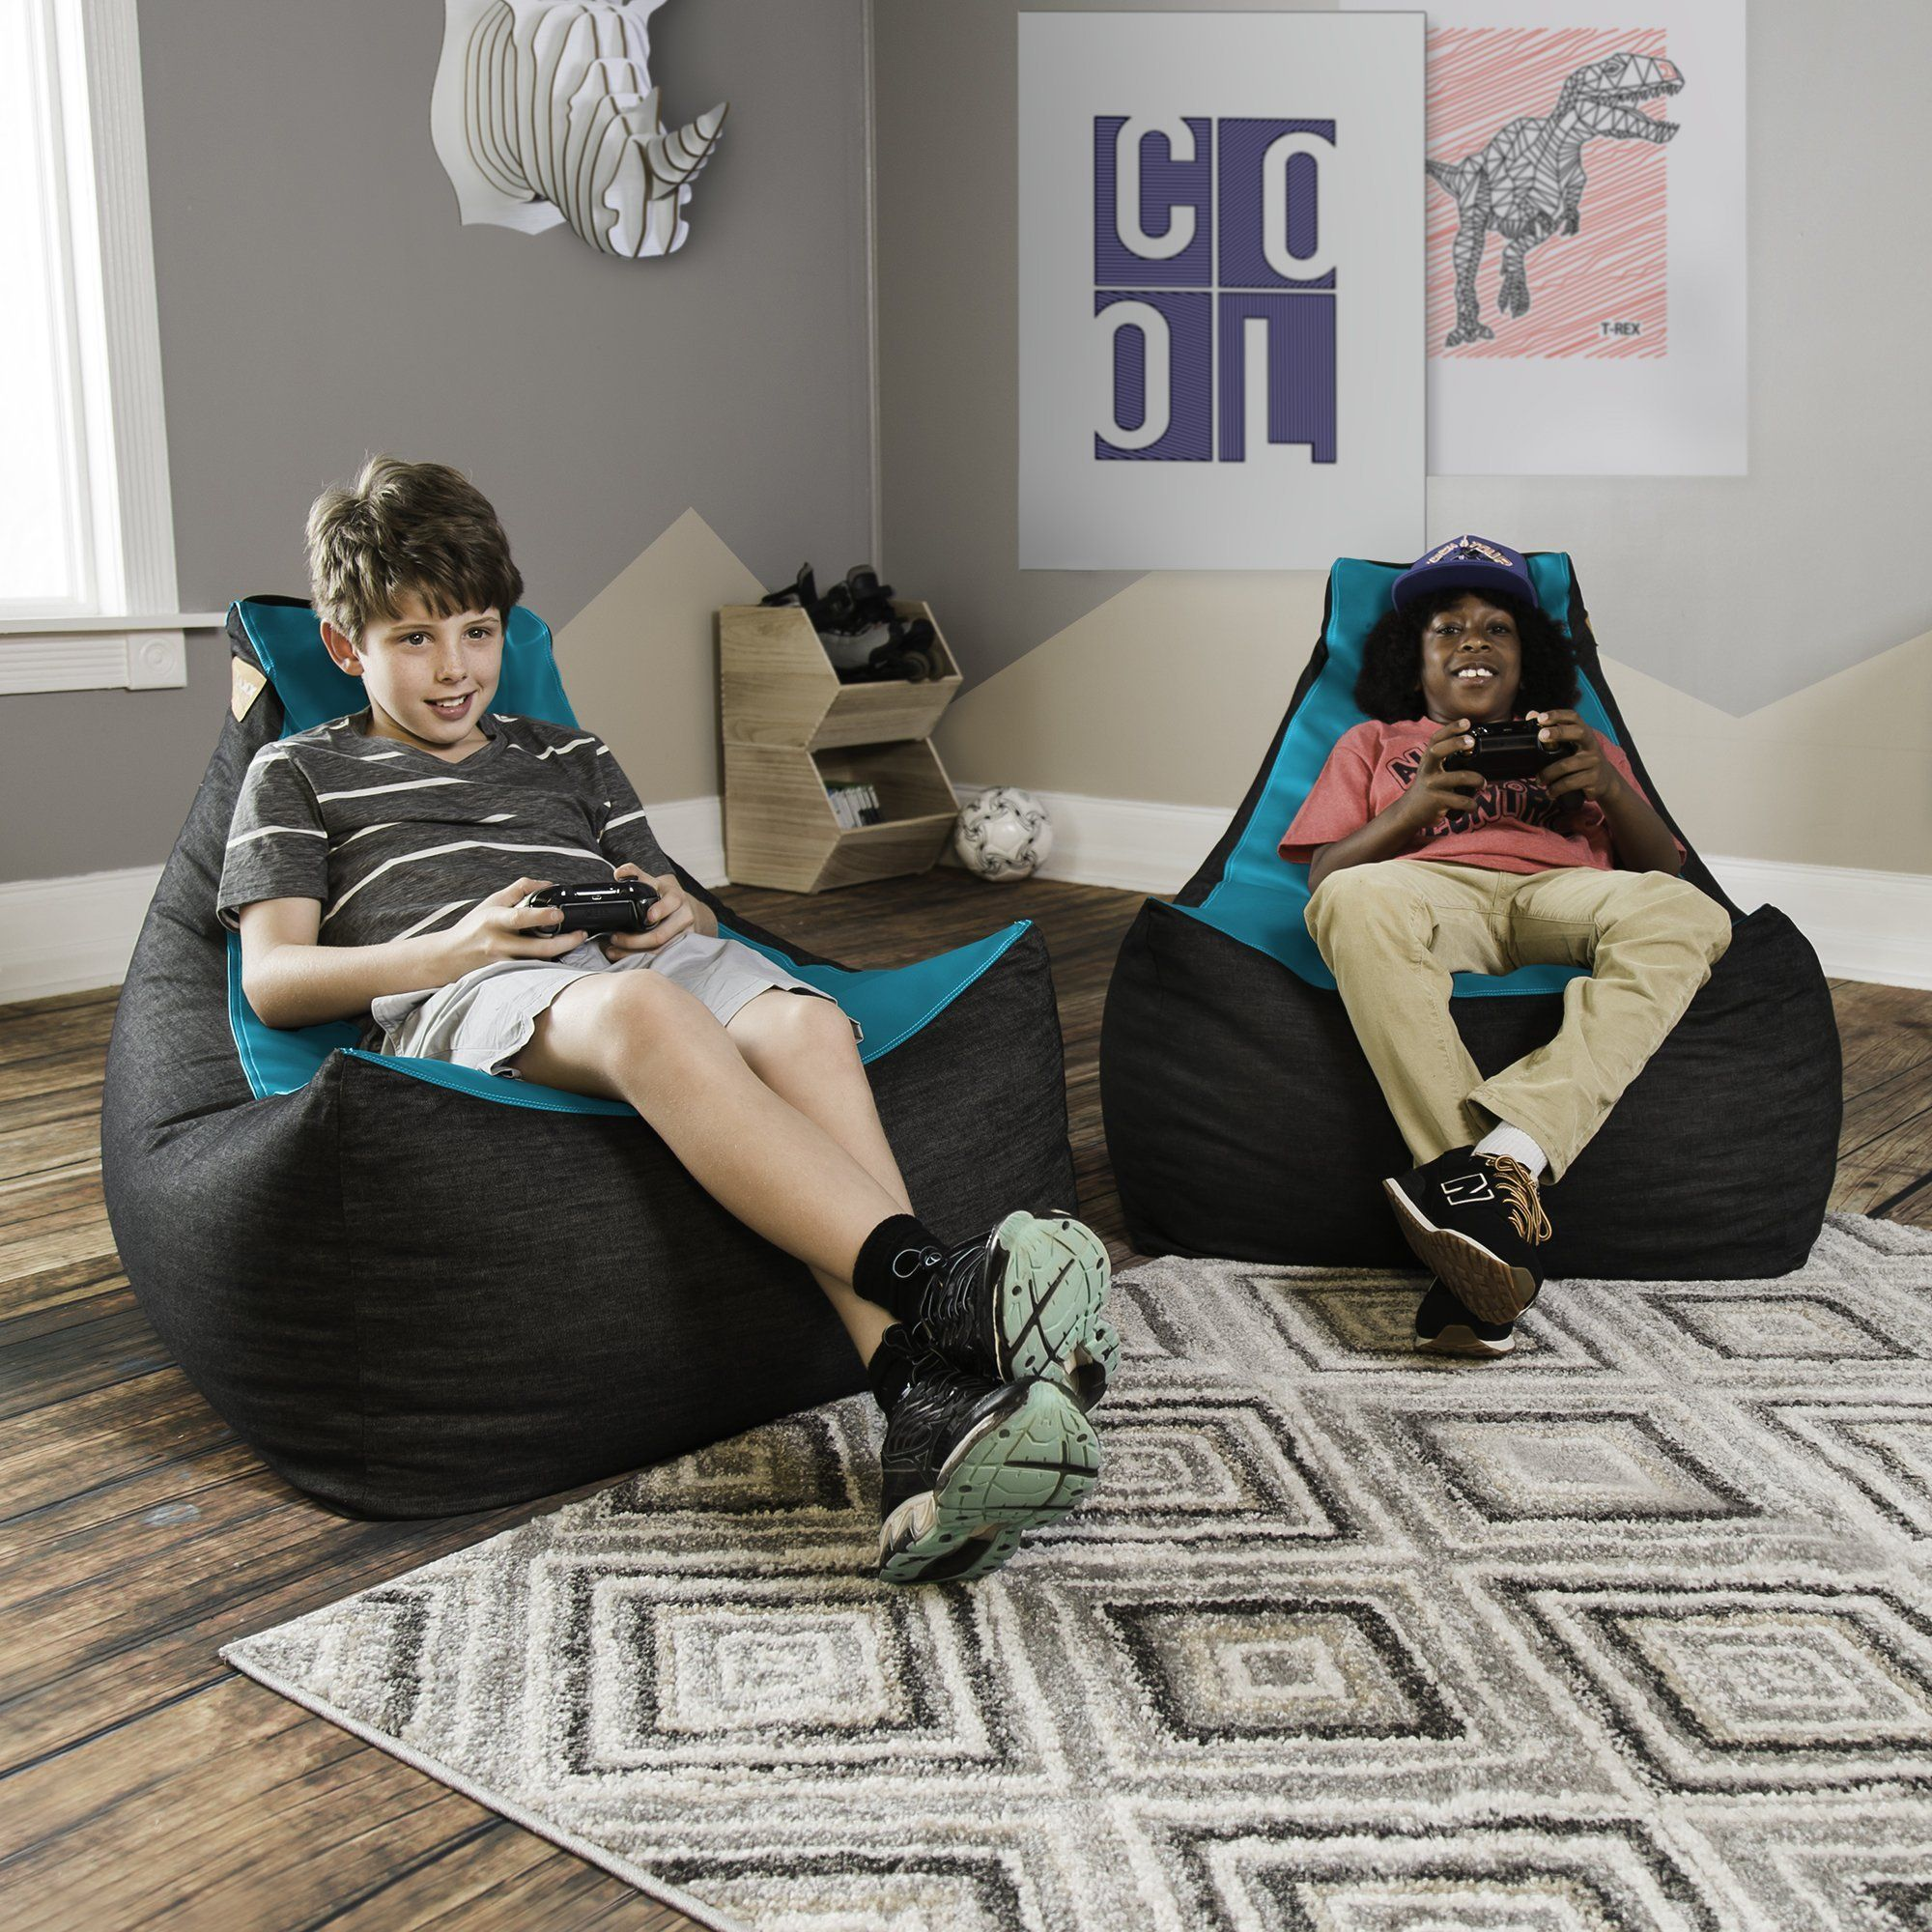 Play In Style With The Jaxx Pixel Bean Bag Gamer Chair This Bean Bag Provides Enough Comfort To Spend A Wh Gamer Chair Bean Bag Chair Balcony Table And Chairs